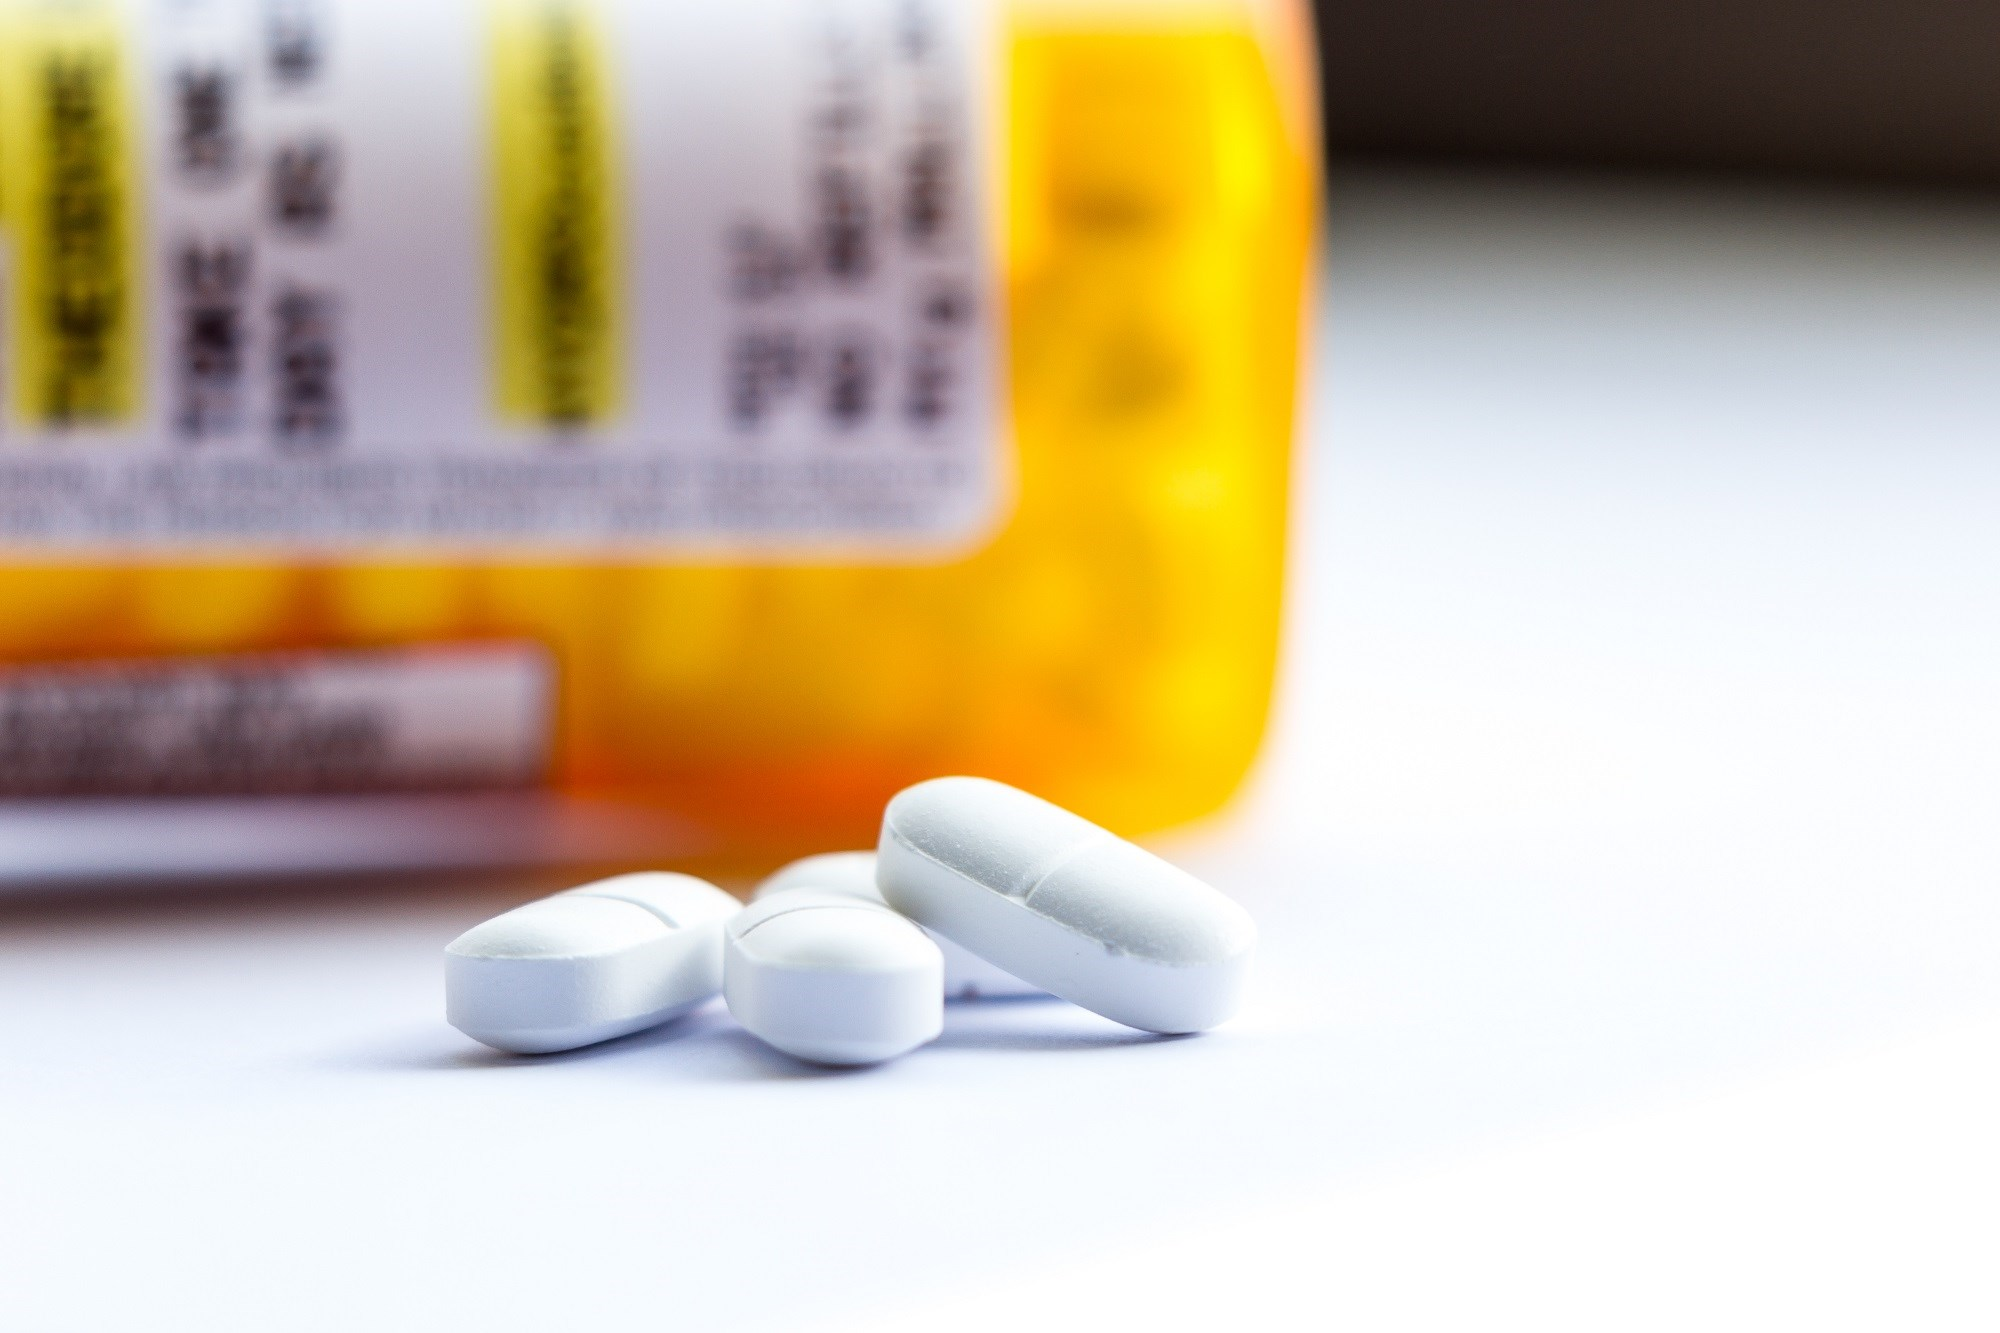 FDA: Opioid Analgesic REMS Expanded to Include Immediate-Release Products